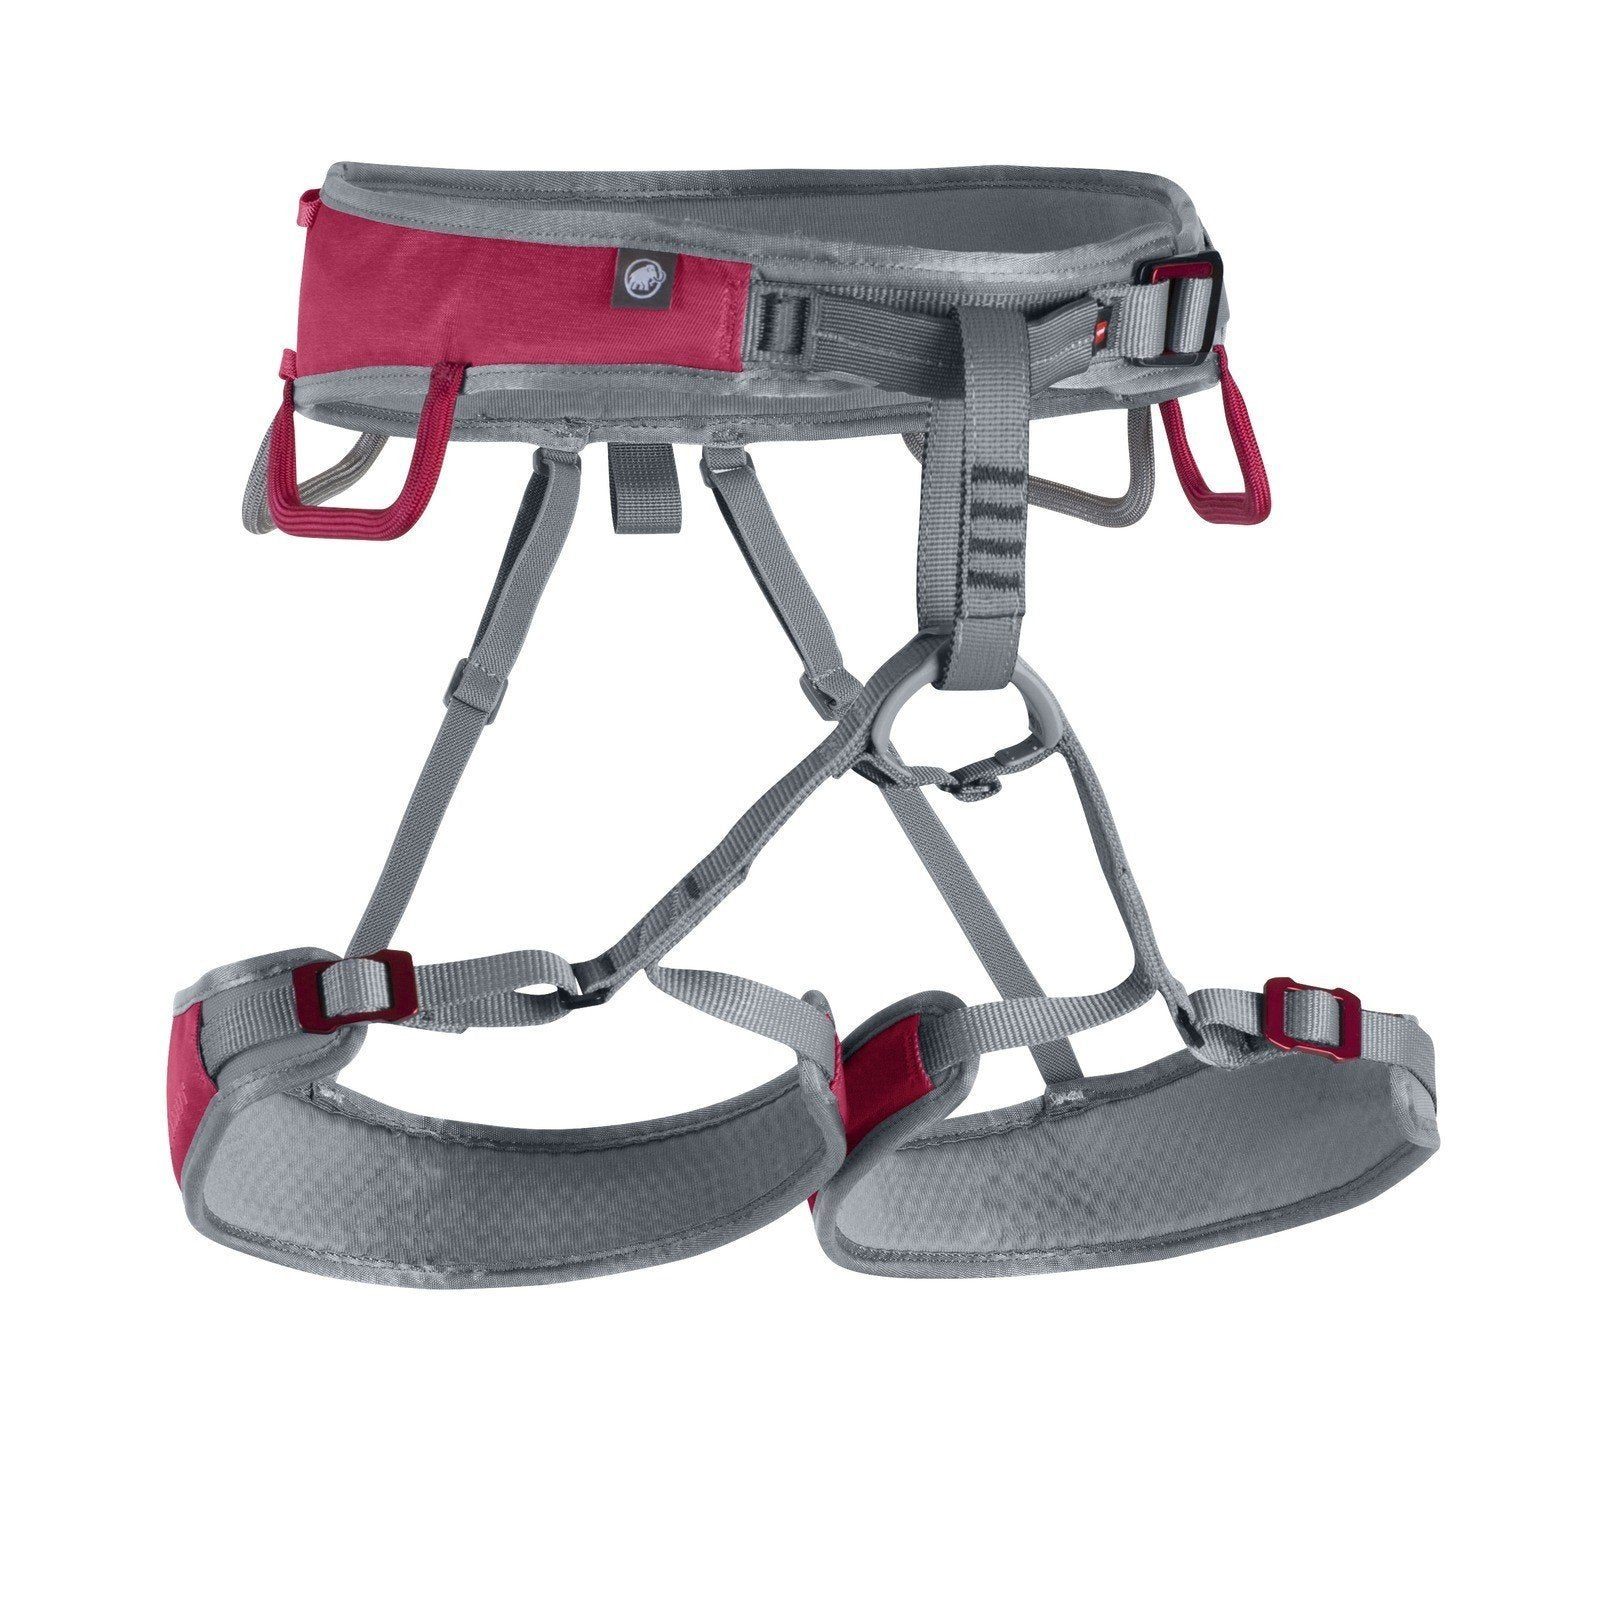 Mammut Ophir Speedfit Womens Harness, front view, in grey and red colours